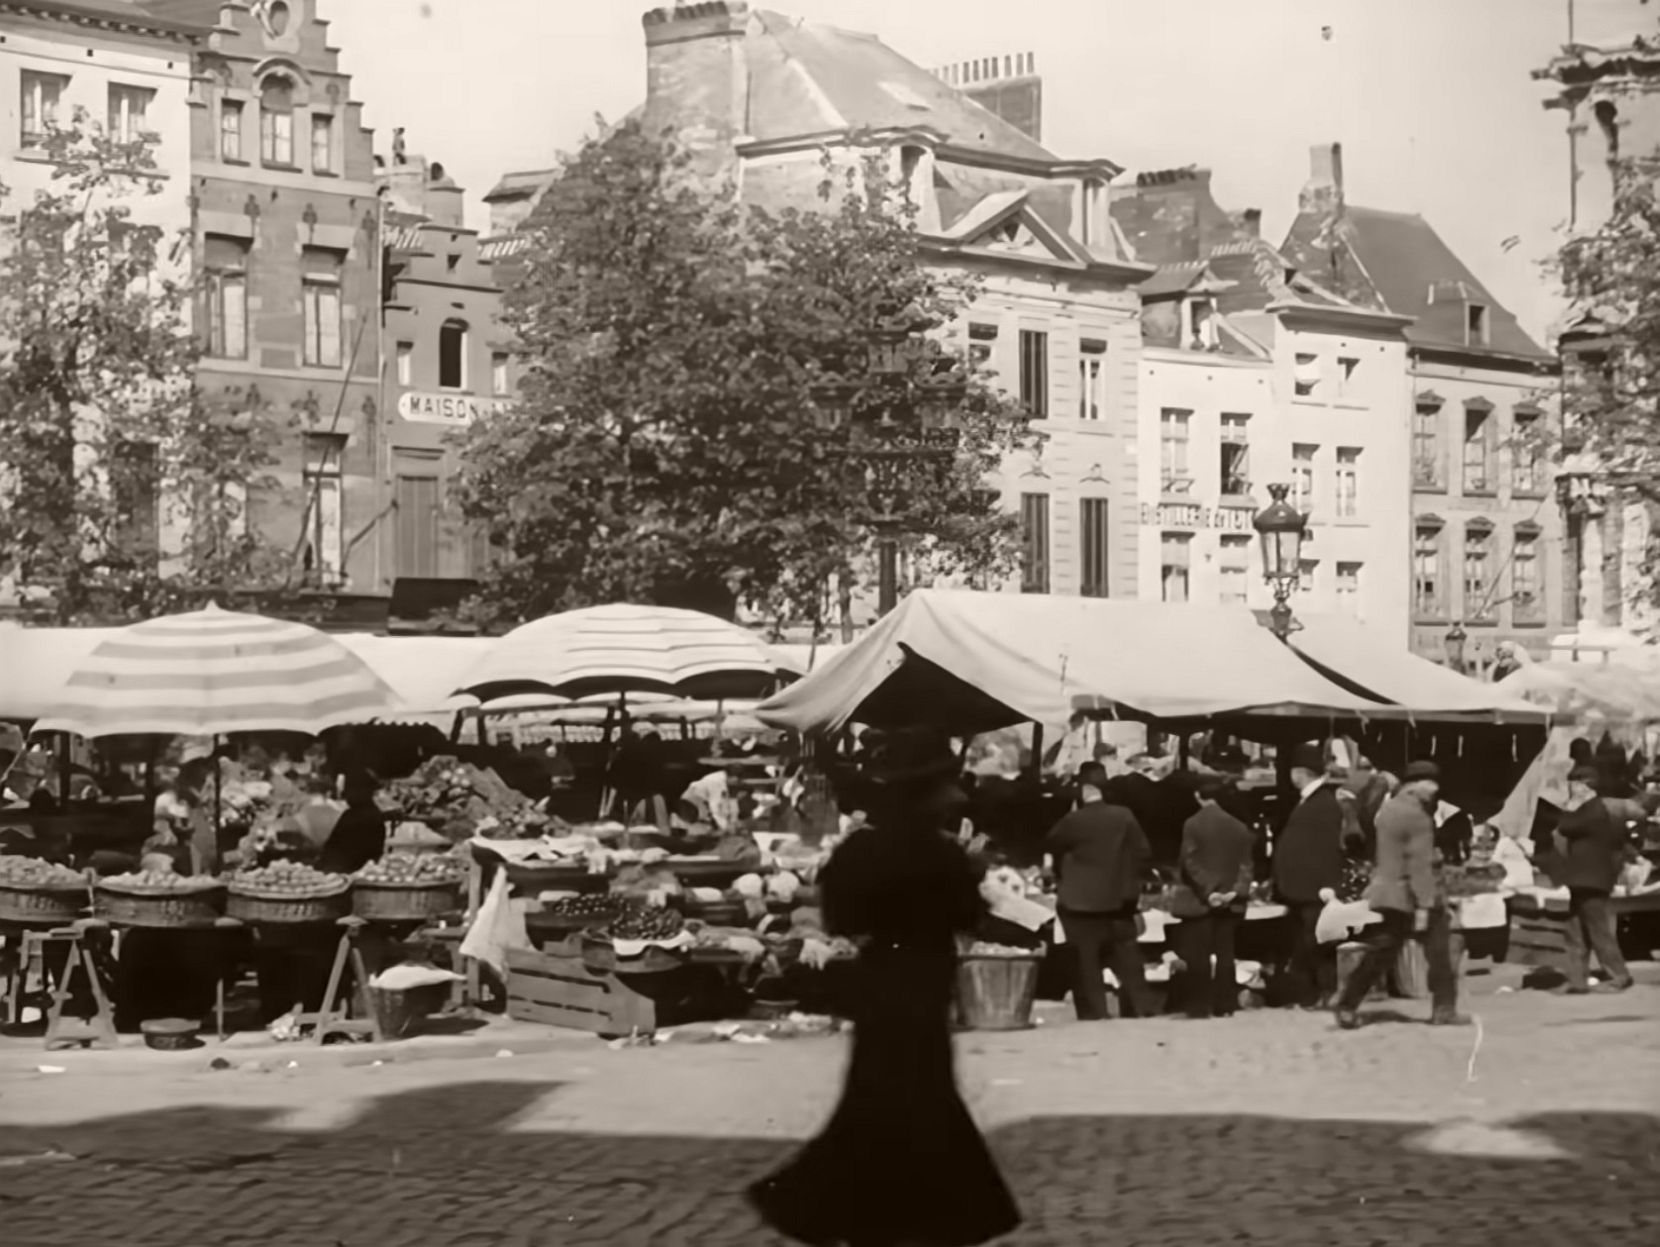 Vintage: Historic B&W photos of Brussels in 1908